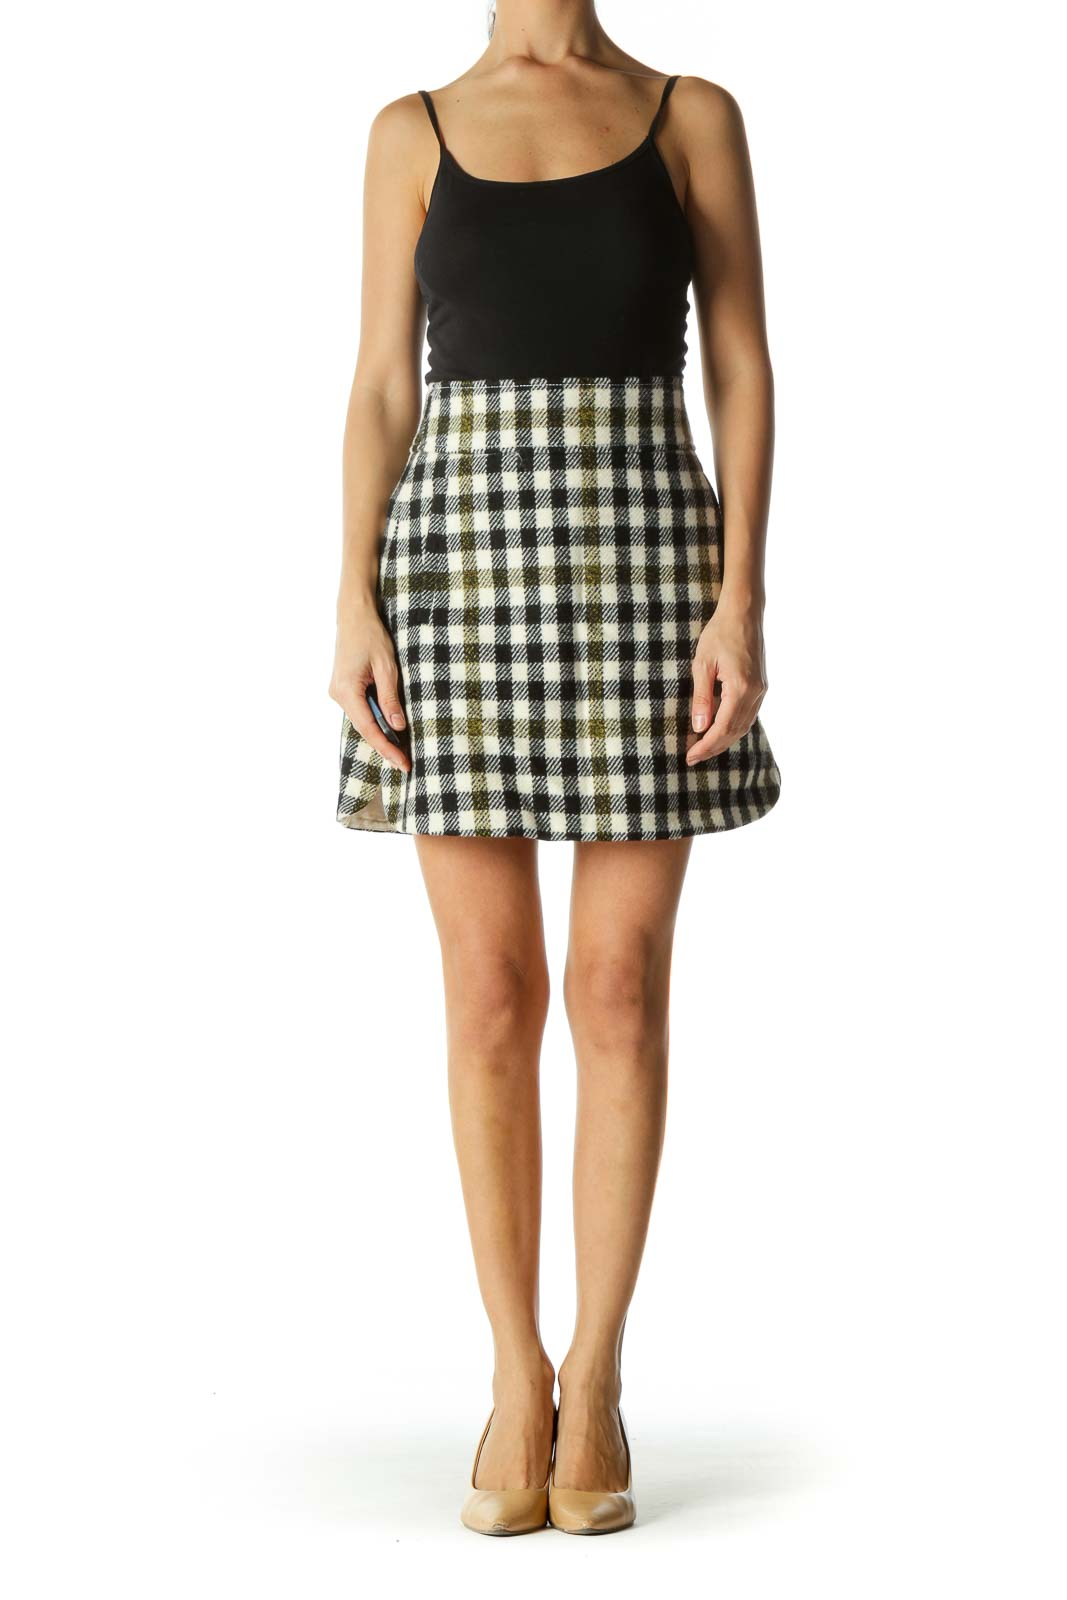 Black and Cream Plaid Flared Skirt